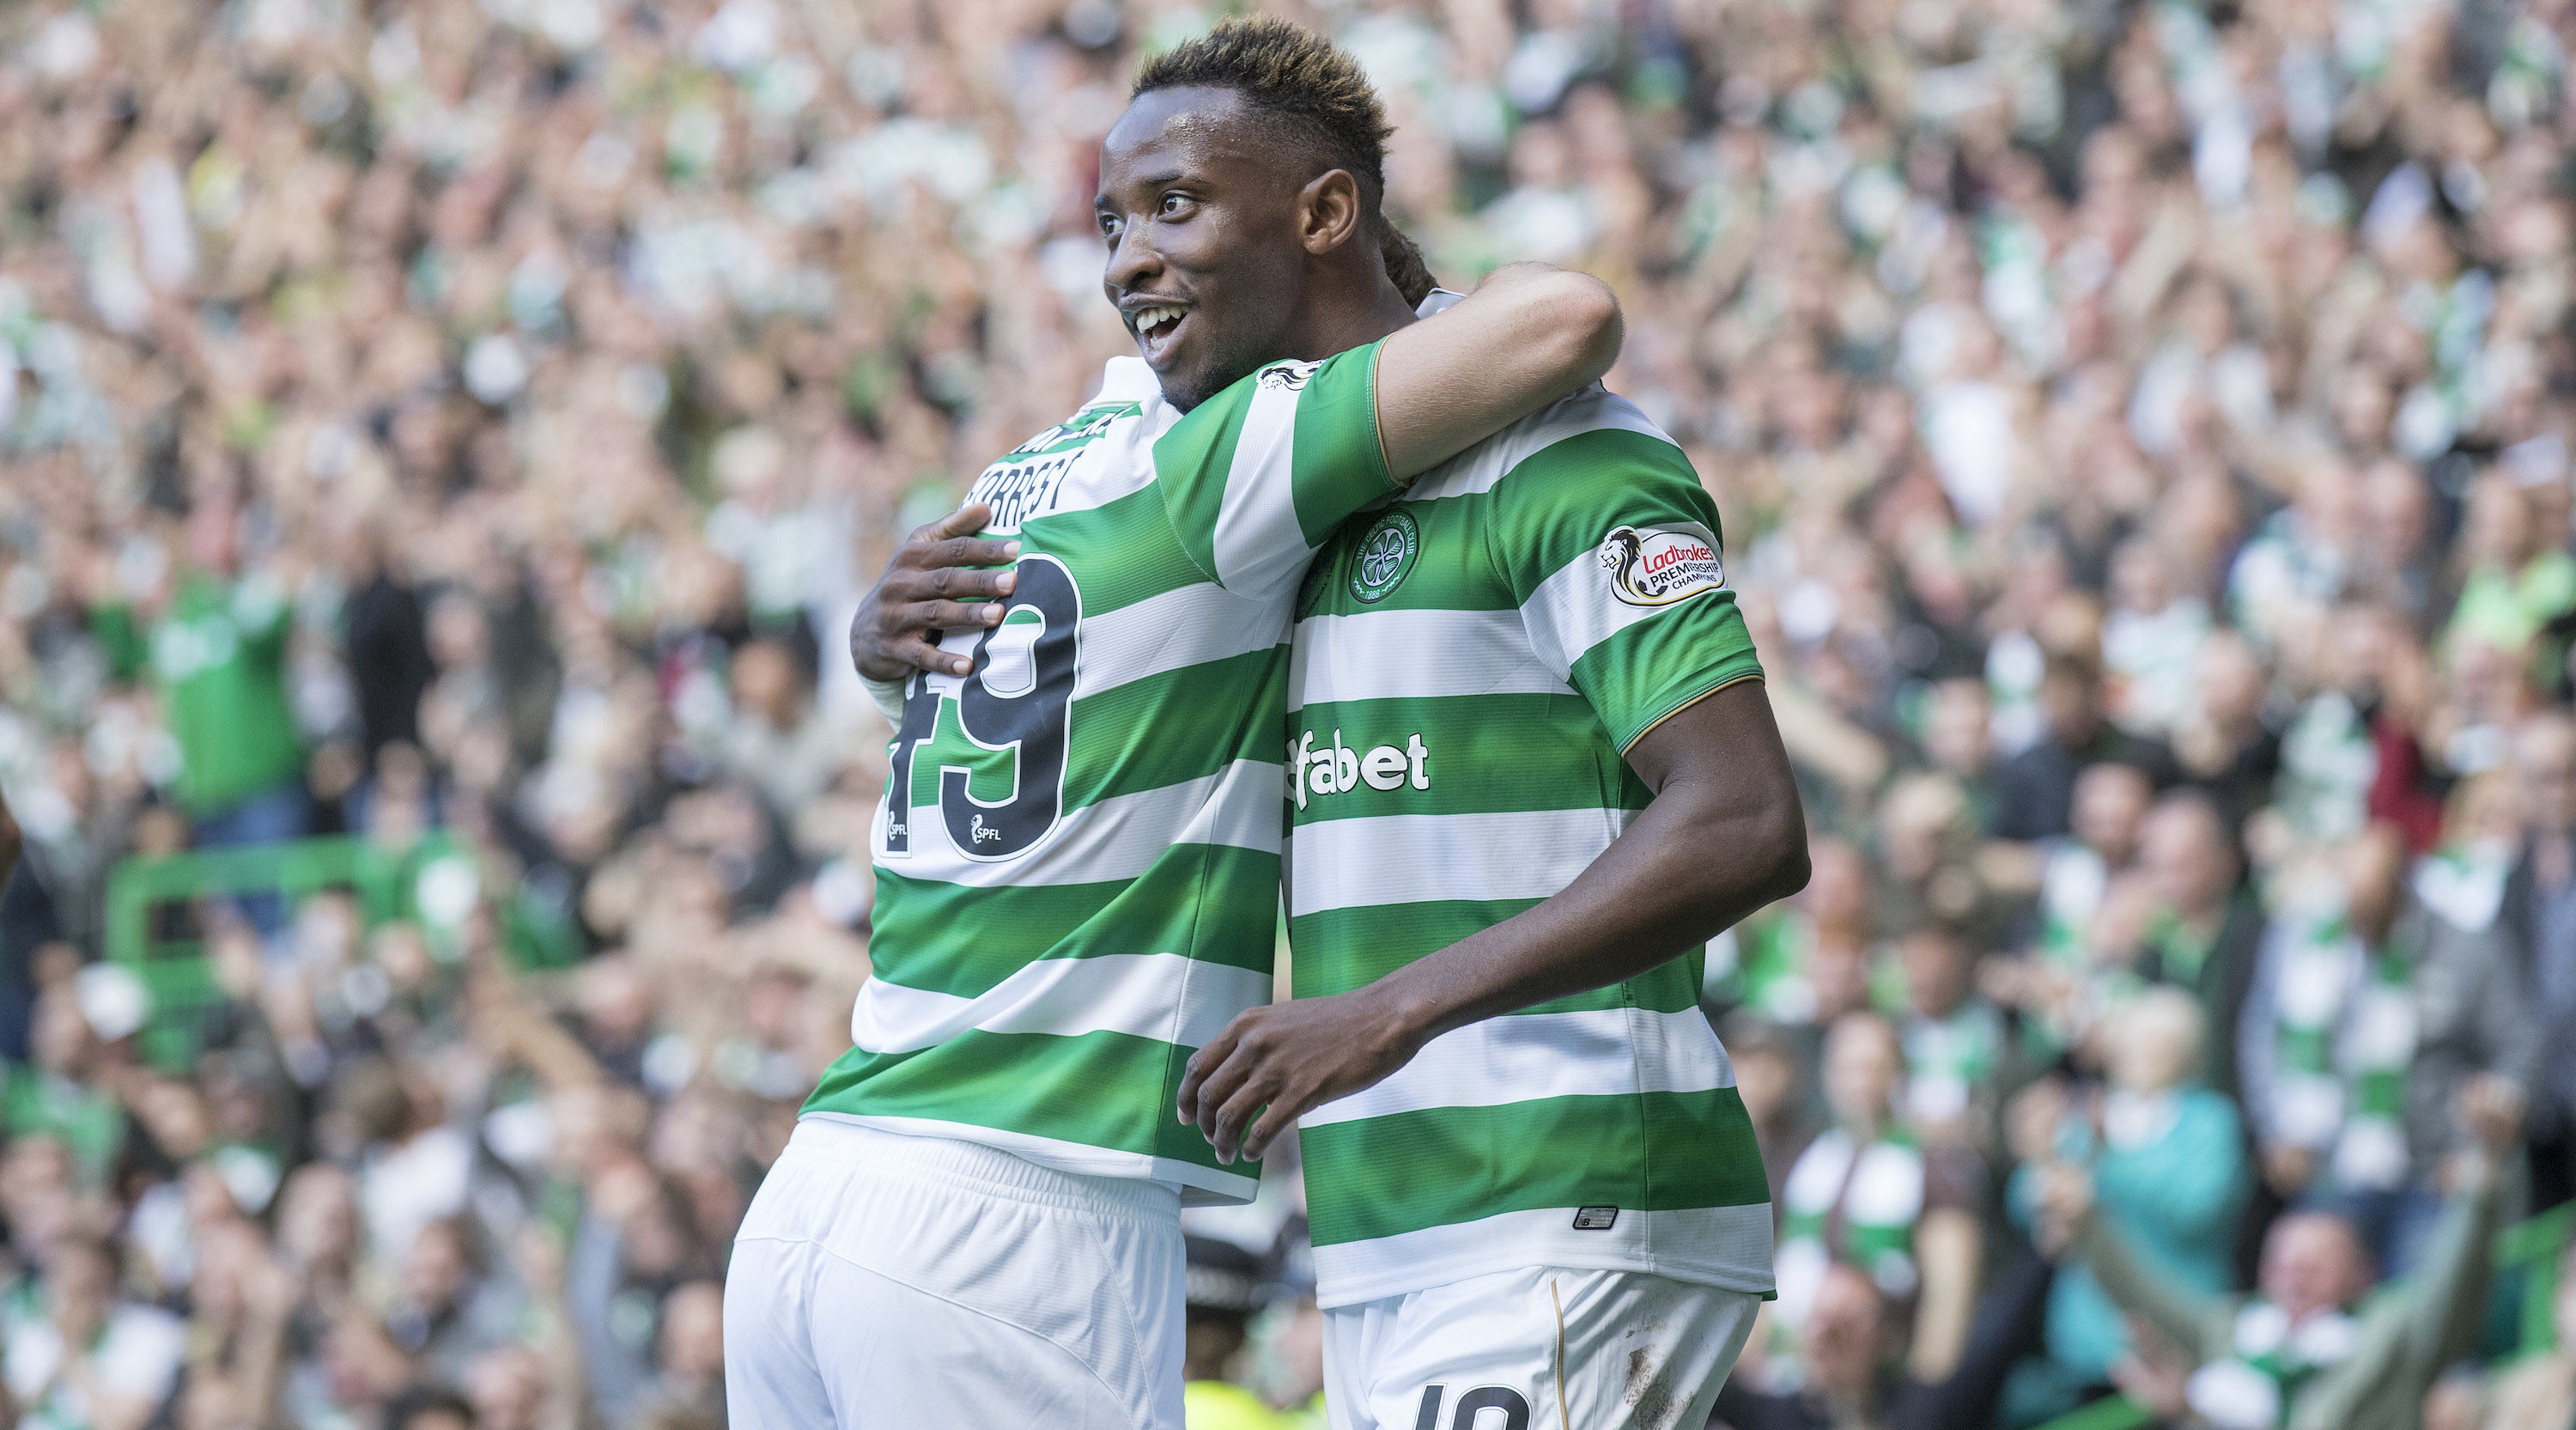 GLASGOW , SCOTLAND - SEPTEMBER 10: Moussa Dembele of Celtic celebrates his 2nd goal during the Ladbrokes Scottish Premiership match between Celtic and Rangers at Celtic Park on September 10, 2016 in Glasgow. (Photo by Steve Welsh/Getty Images)